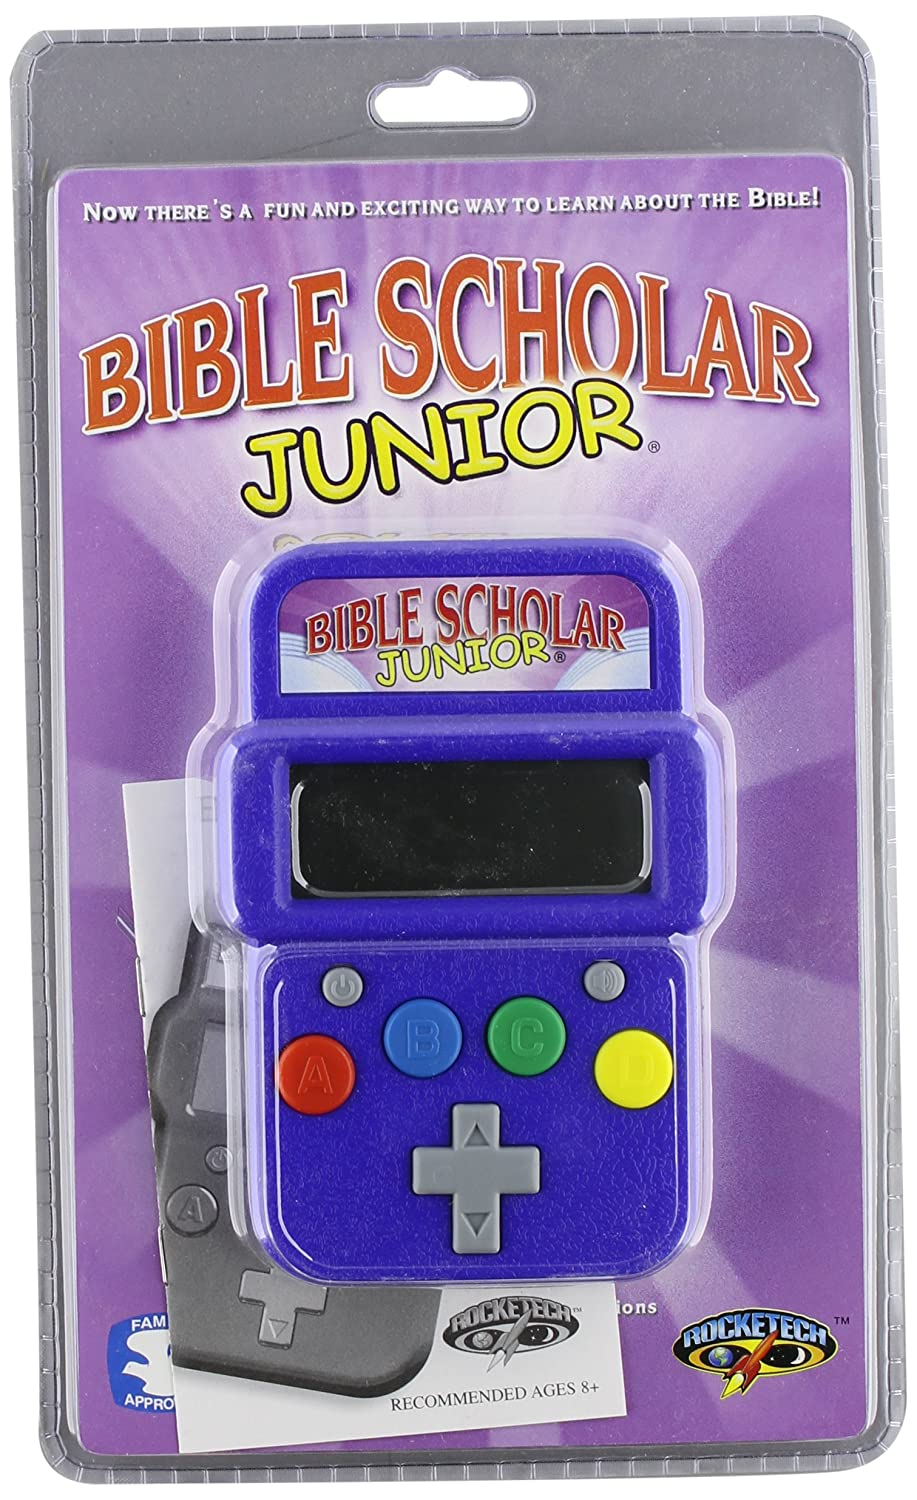 【サイズ交換OK】 Rocketech Bible Scholar Junior Electronic Hand-Held Game B002LZUR2I, ミズナミシ b6adada7